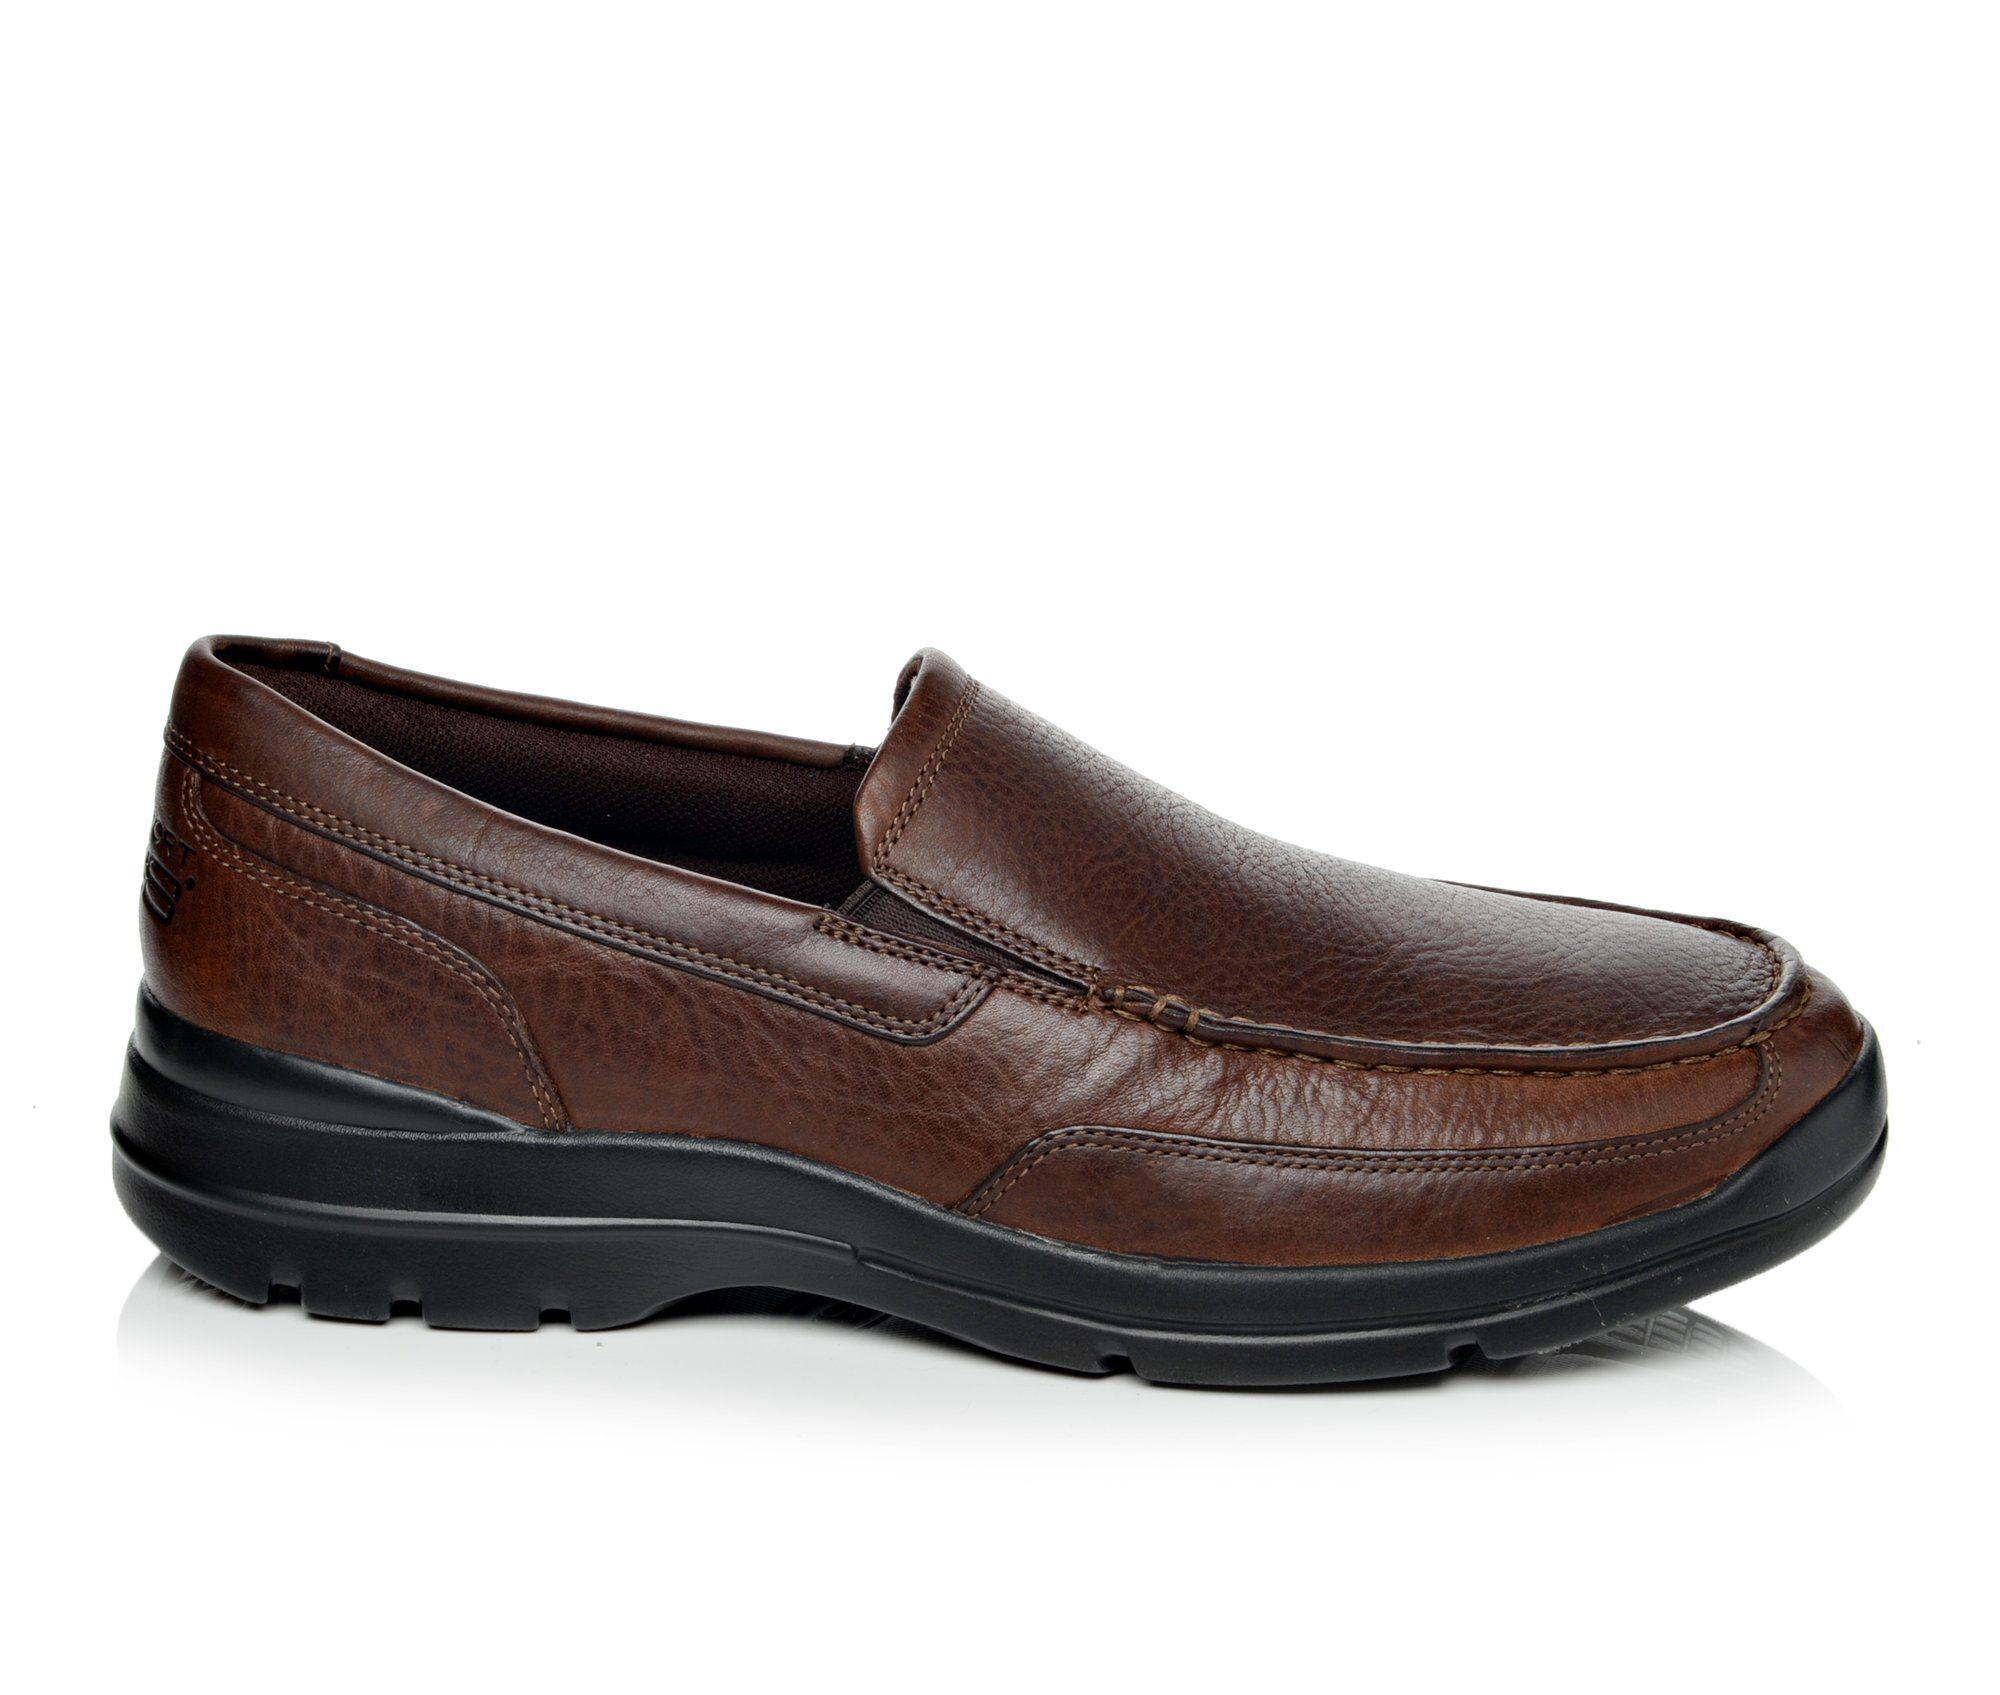 get authentic Men's Rockport Junction Point Slip On Shoes Chocolate